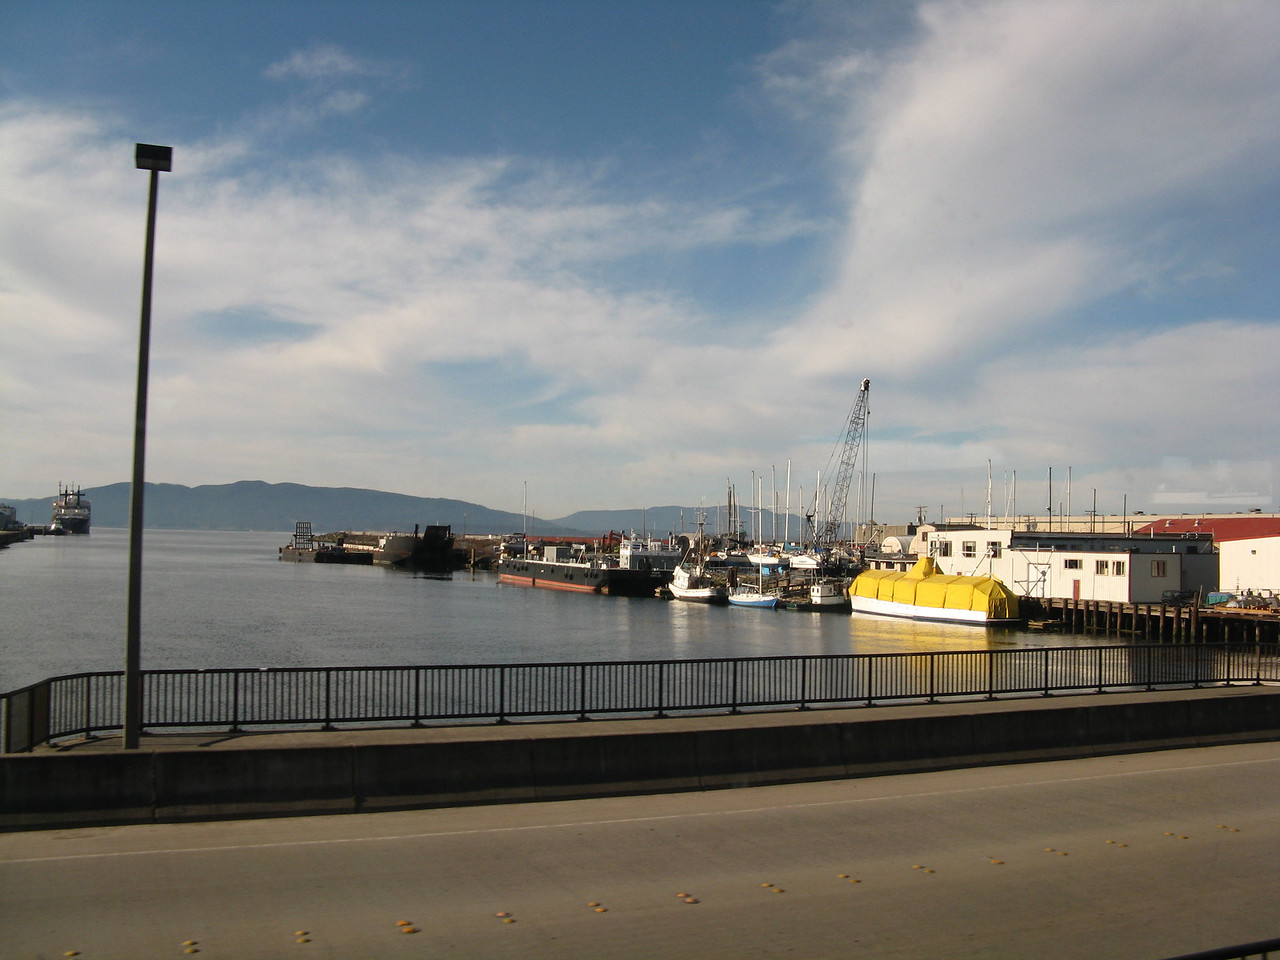 Looking west to Bellingham Bay near the central business district.